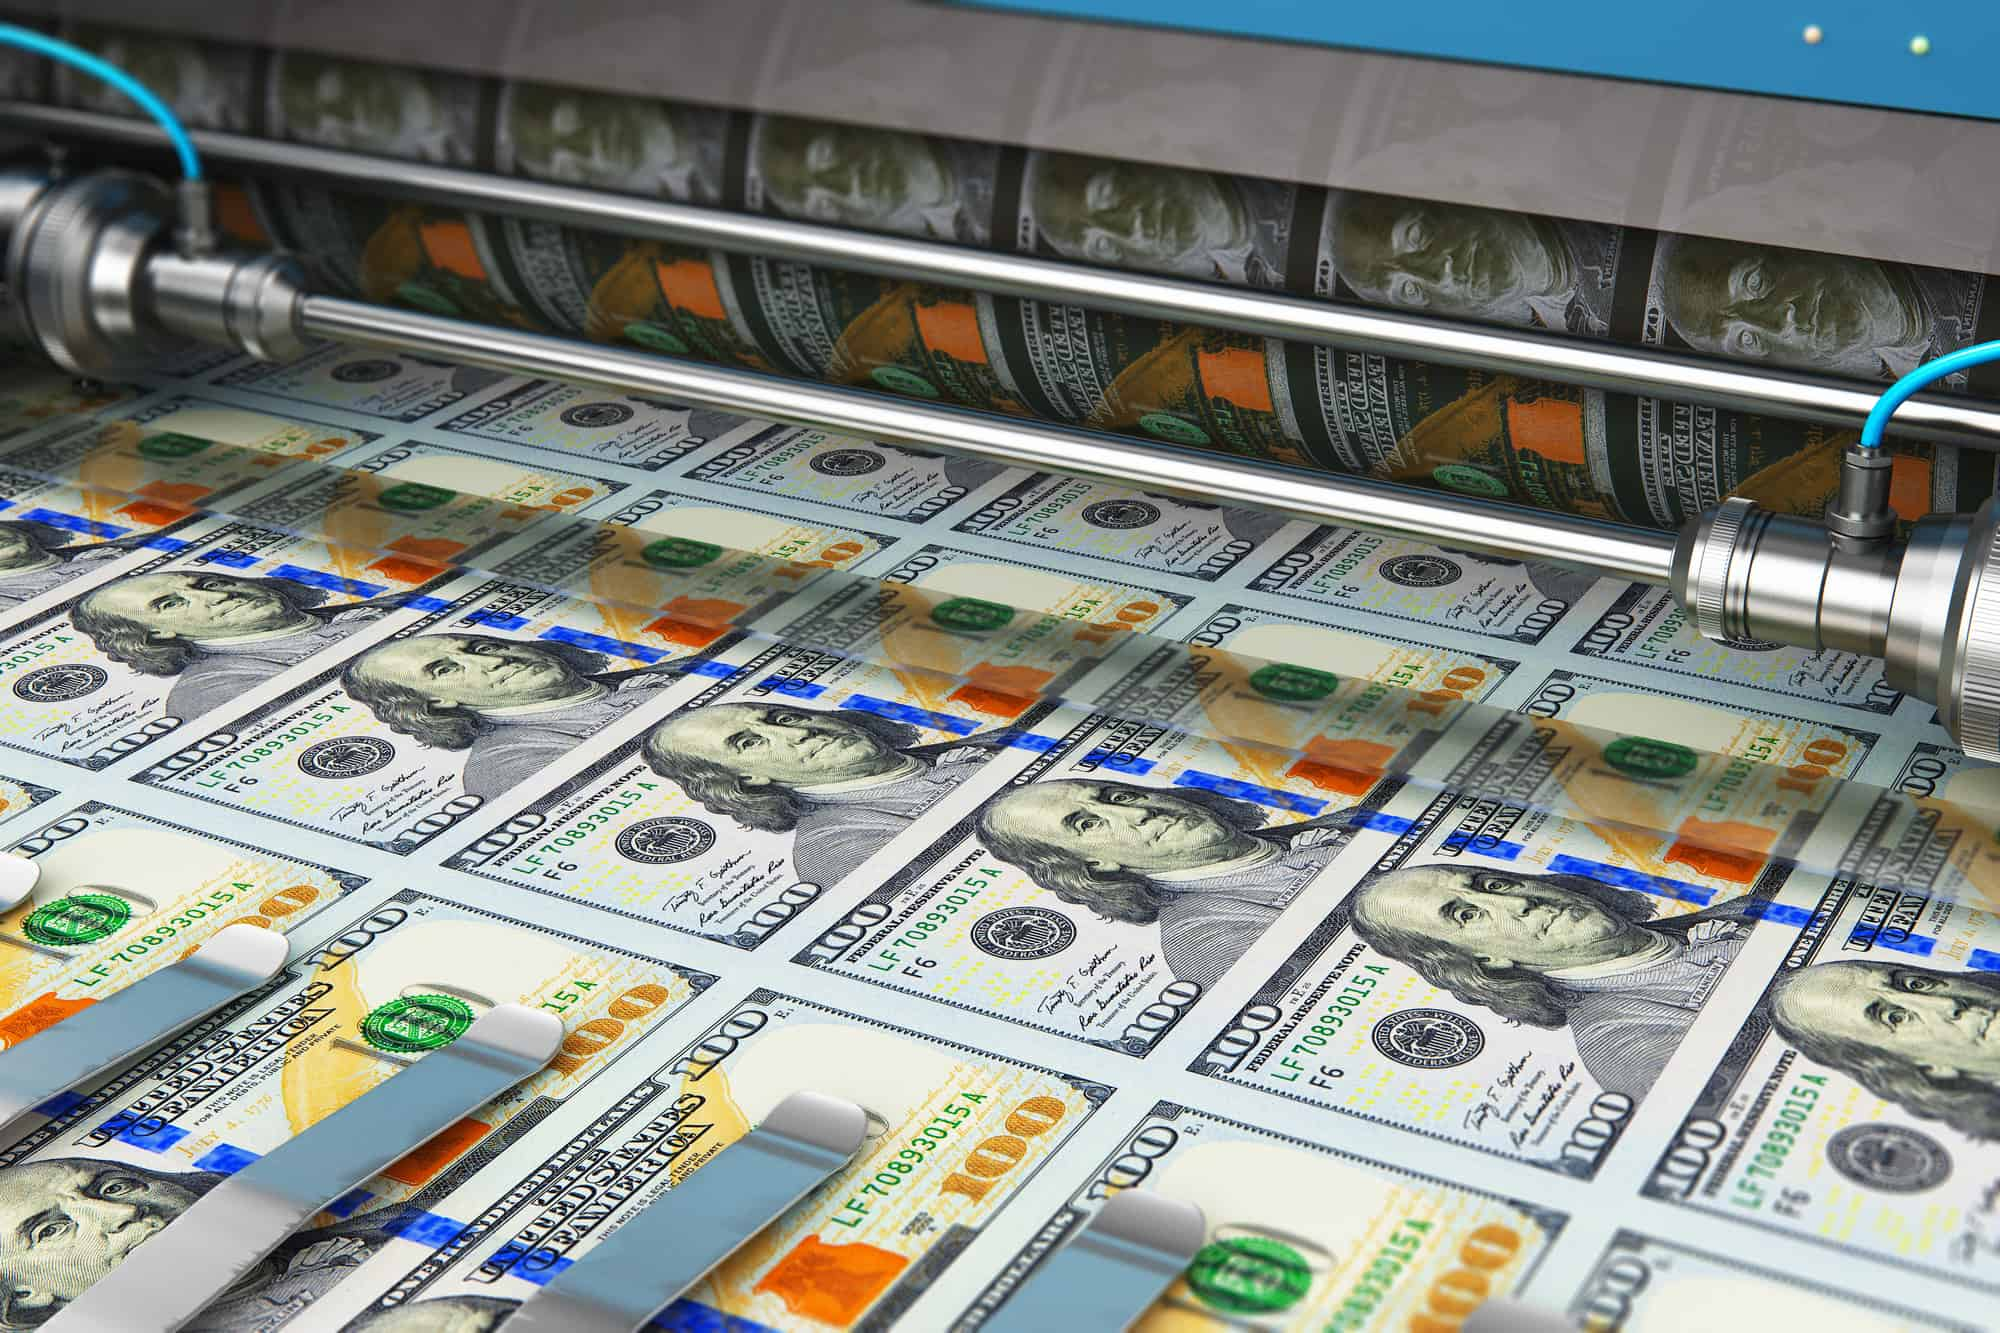 Fed printing money, sending stimulus checks and bailing companies out.